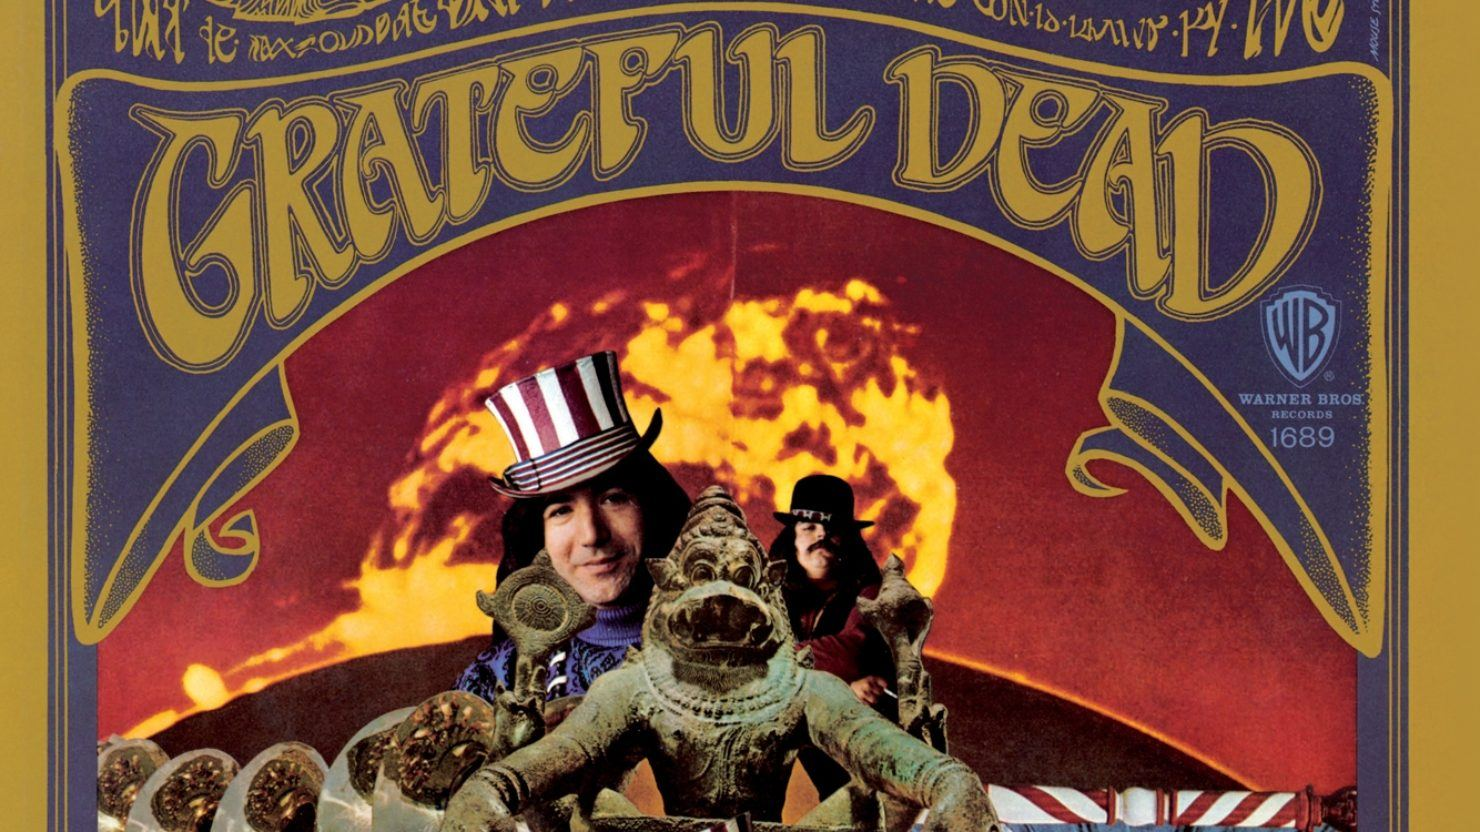 The Grateful Dead To Issue 50th Anniversary Edition Of